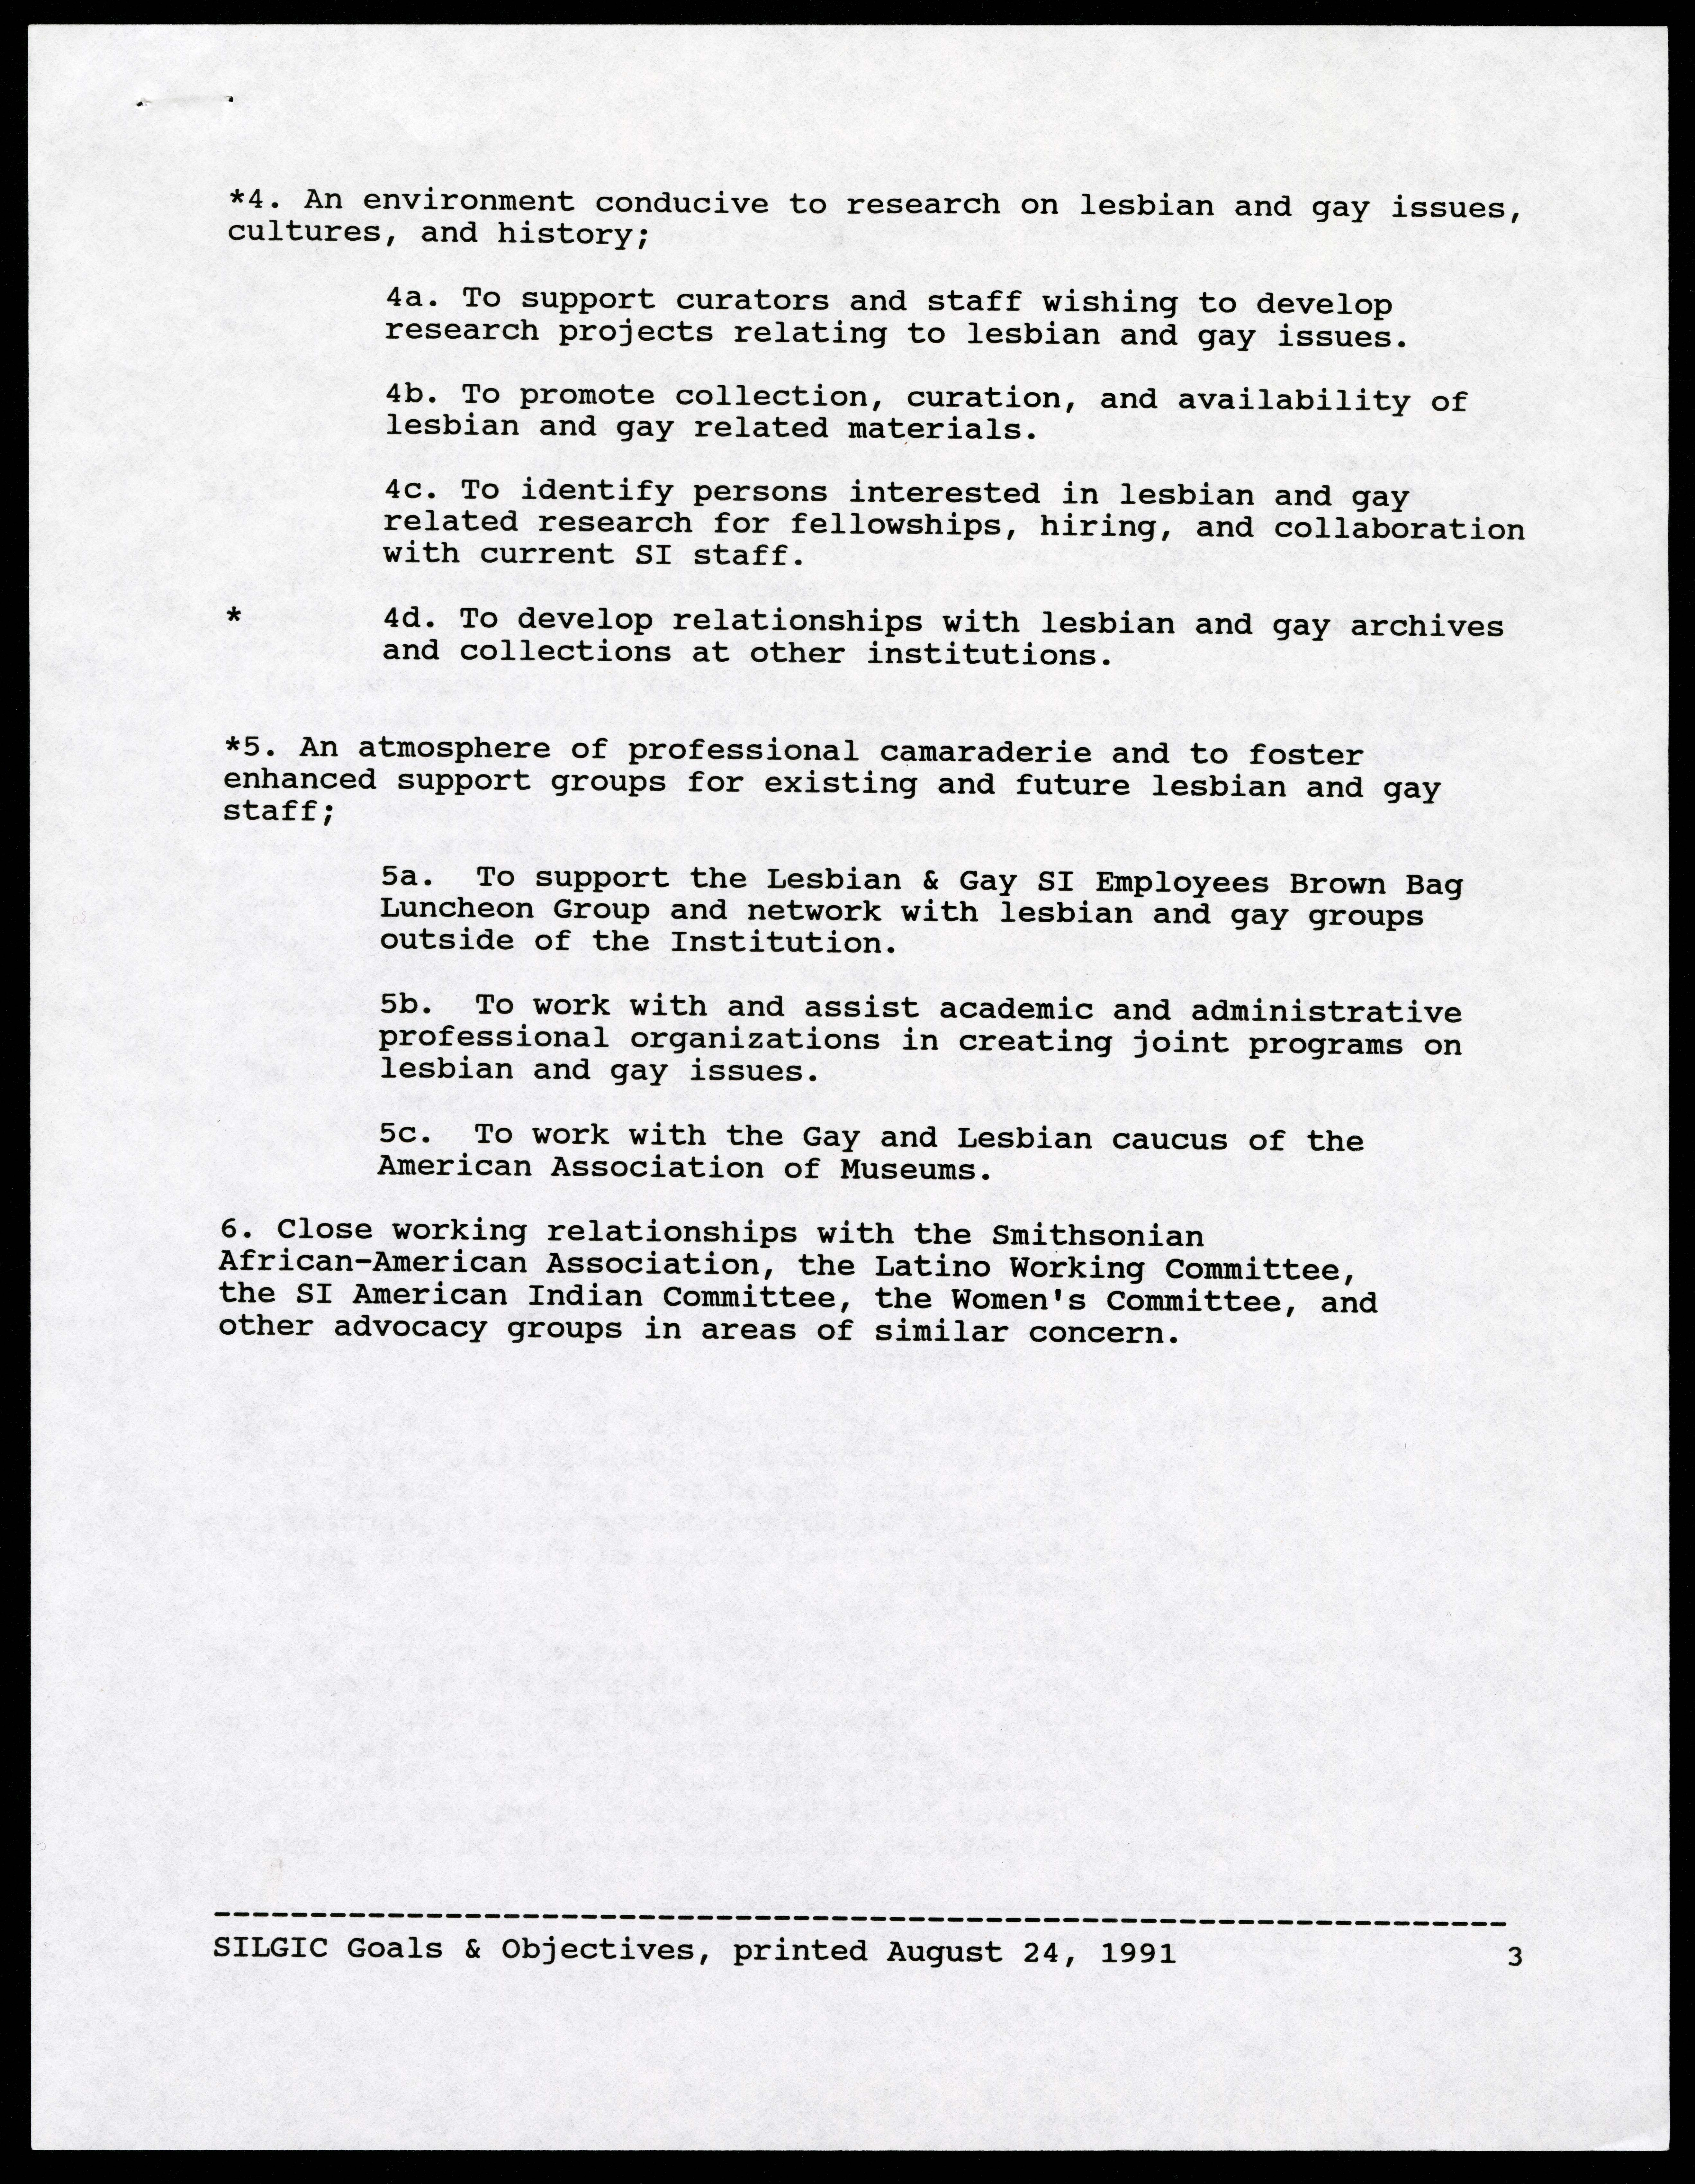 The SI Lesbian & Gay Issues Committee Goals and Objectives document, June 3, 1991.